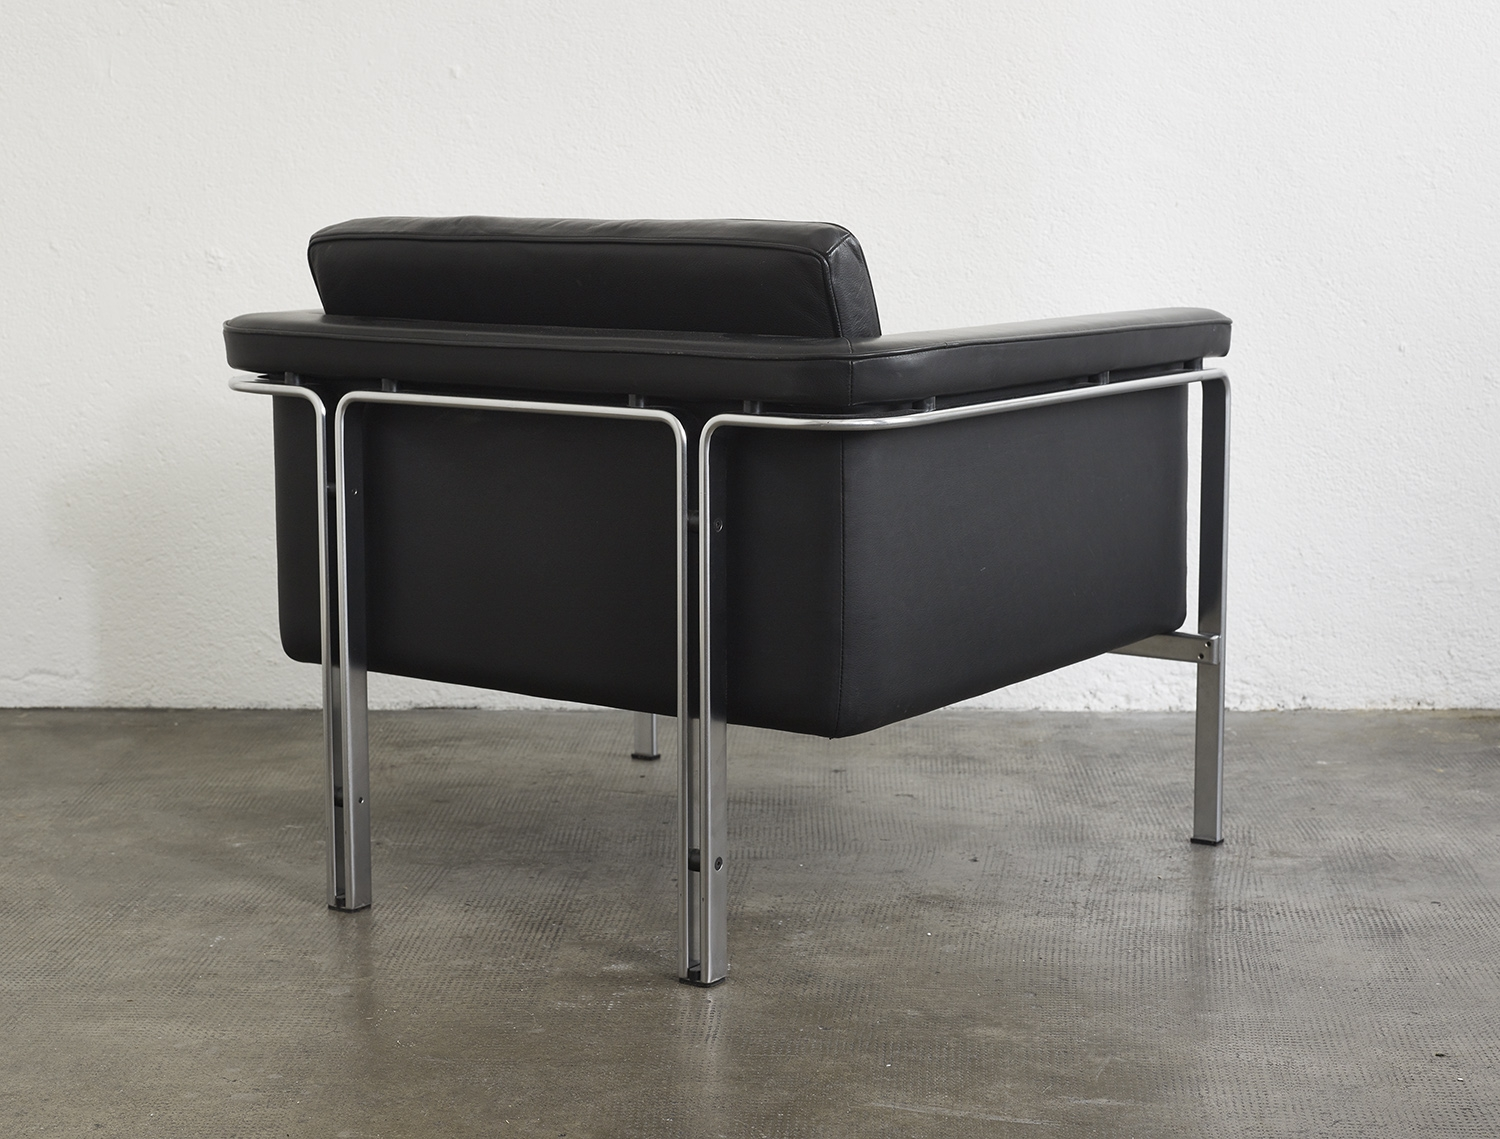 leather-easy-chair-by-horst-bruning-1960-image-03